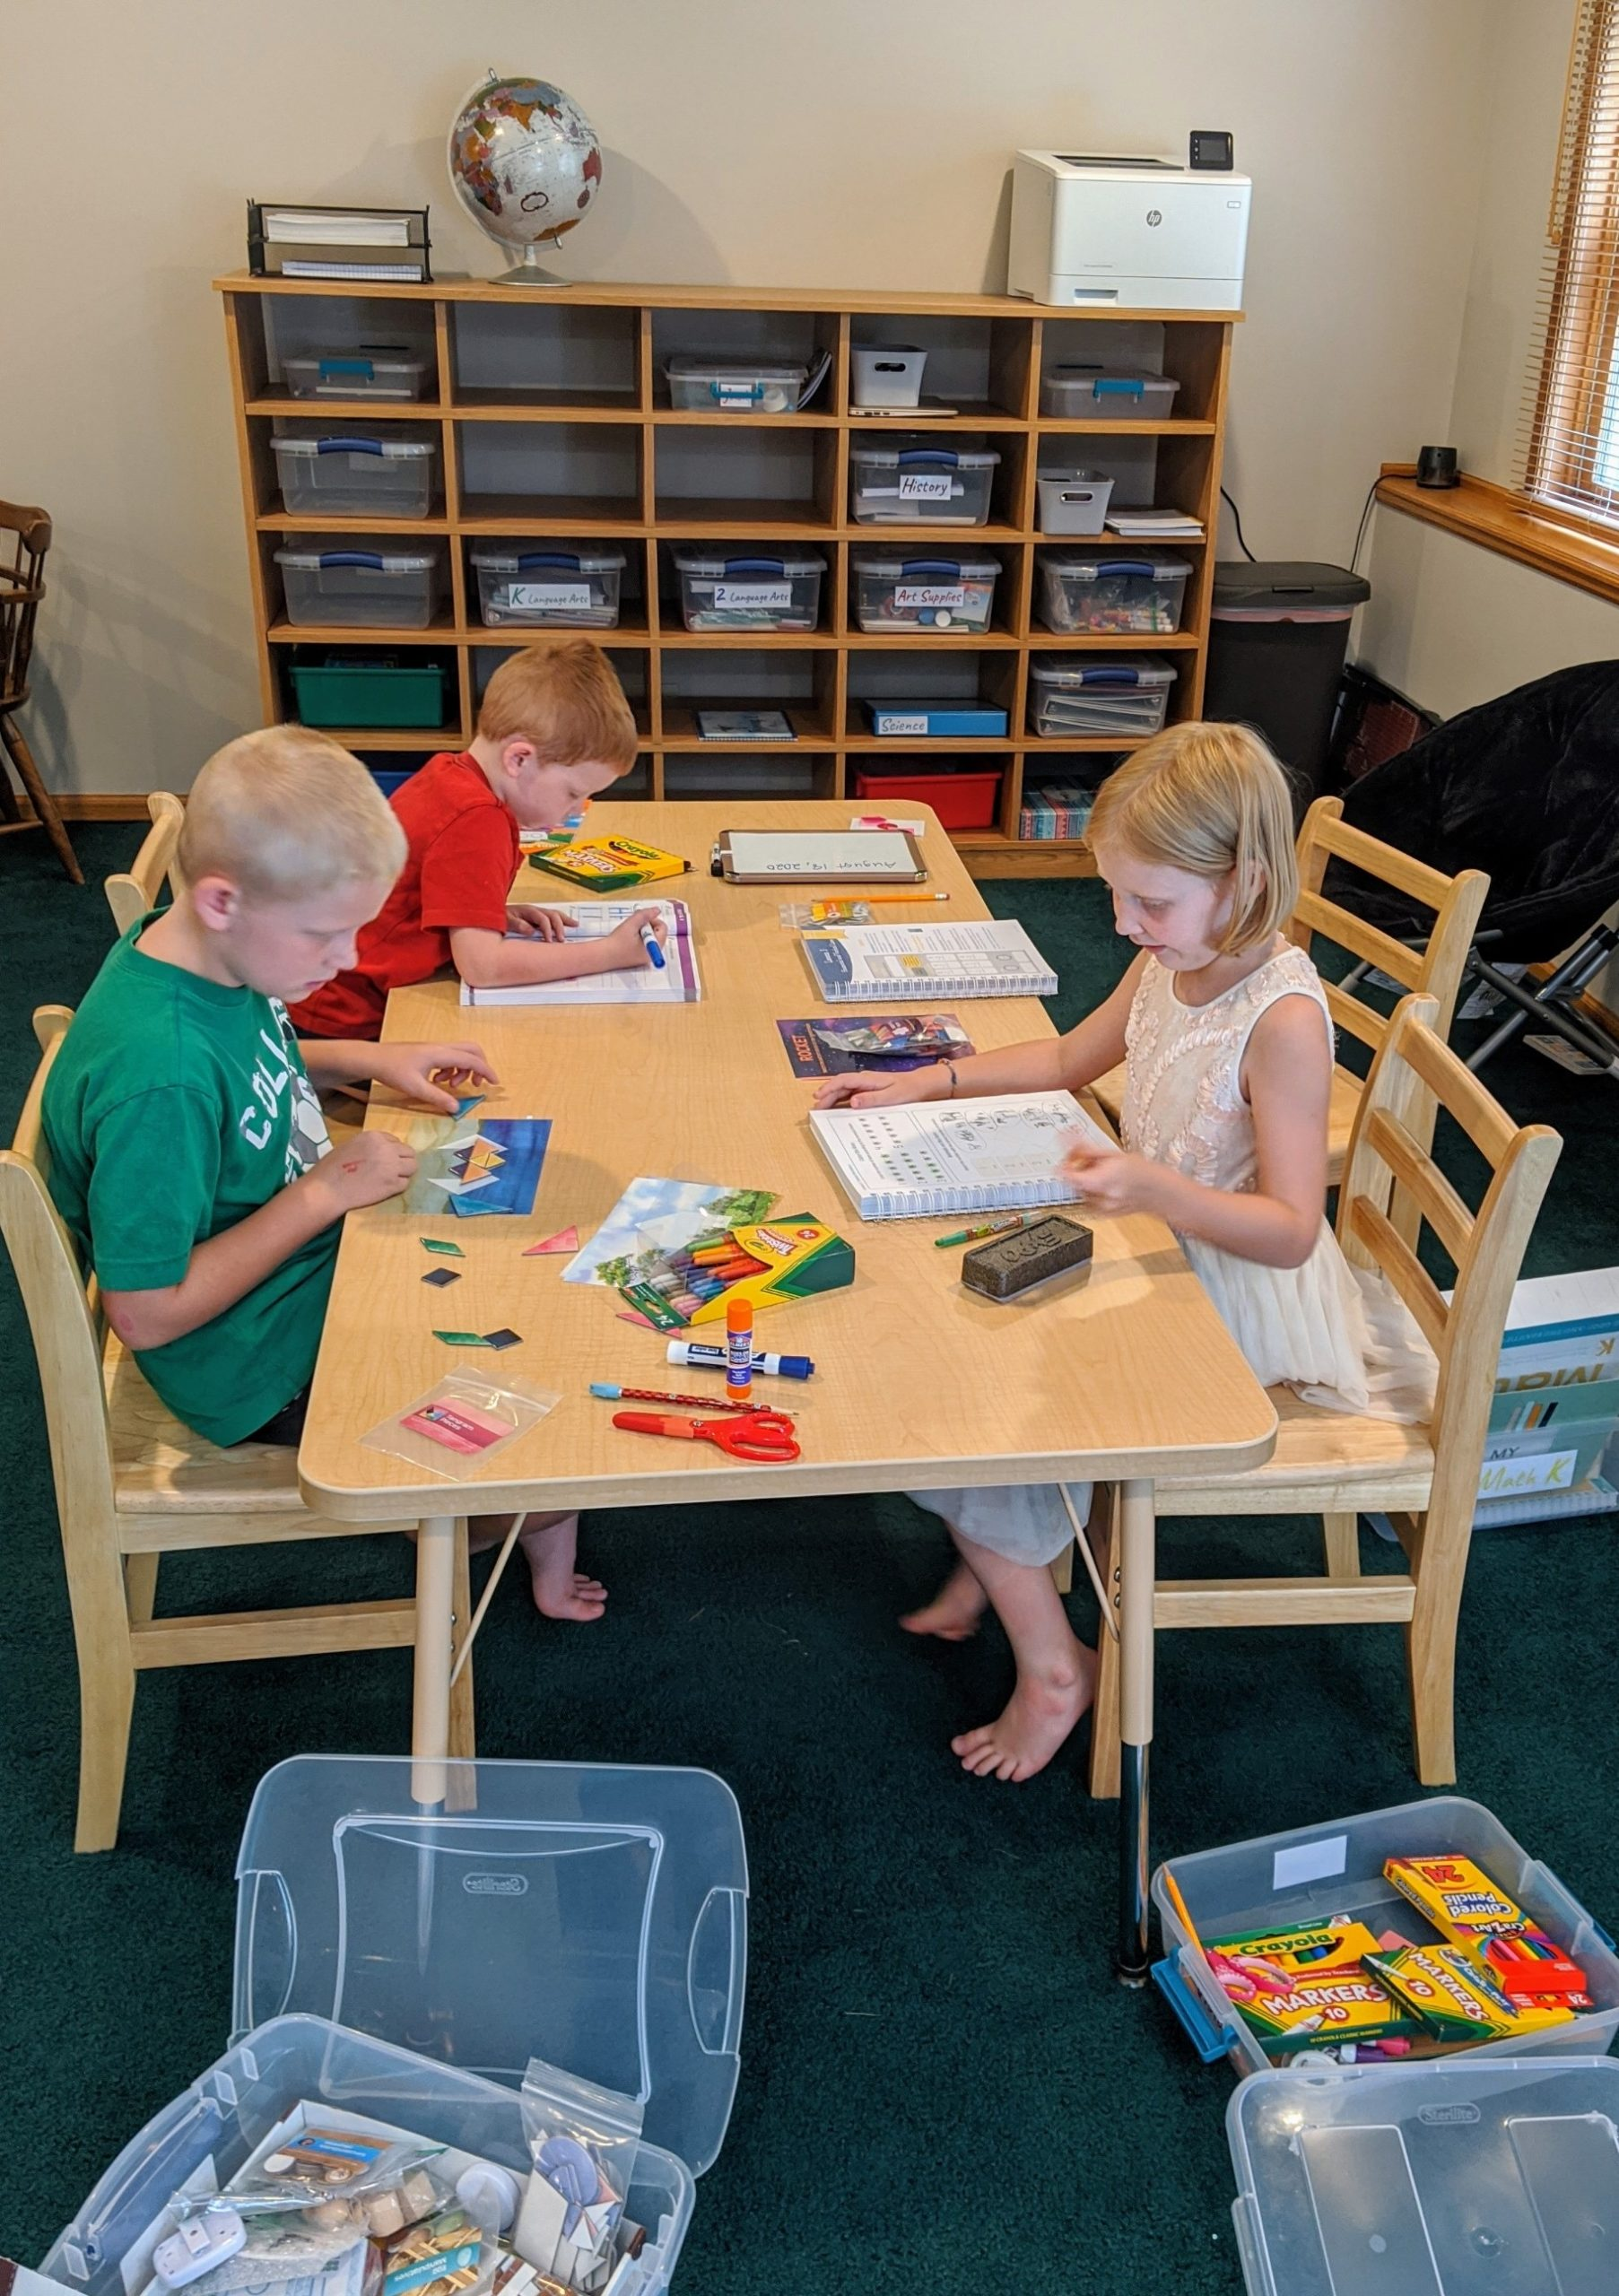 IMG 1529 scaled - Why some families are now homeschooling